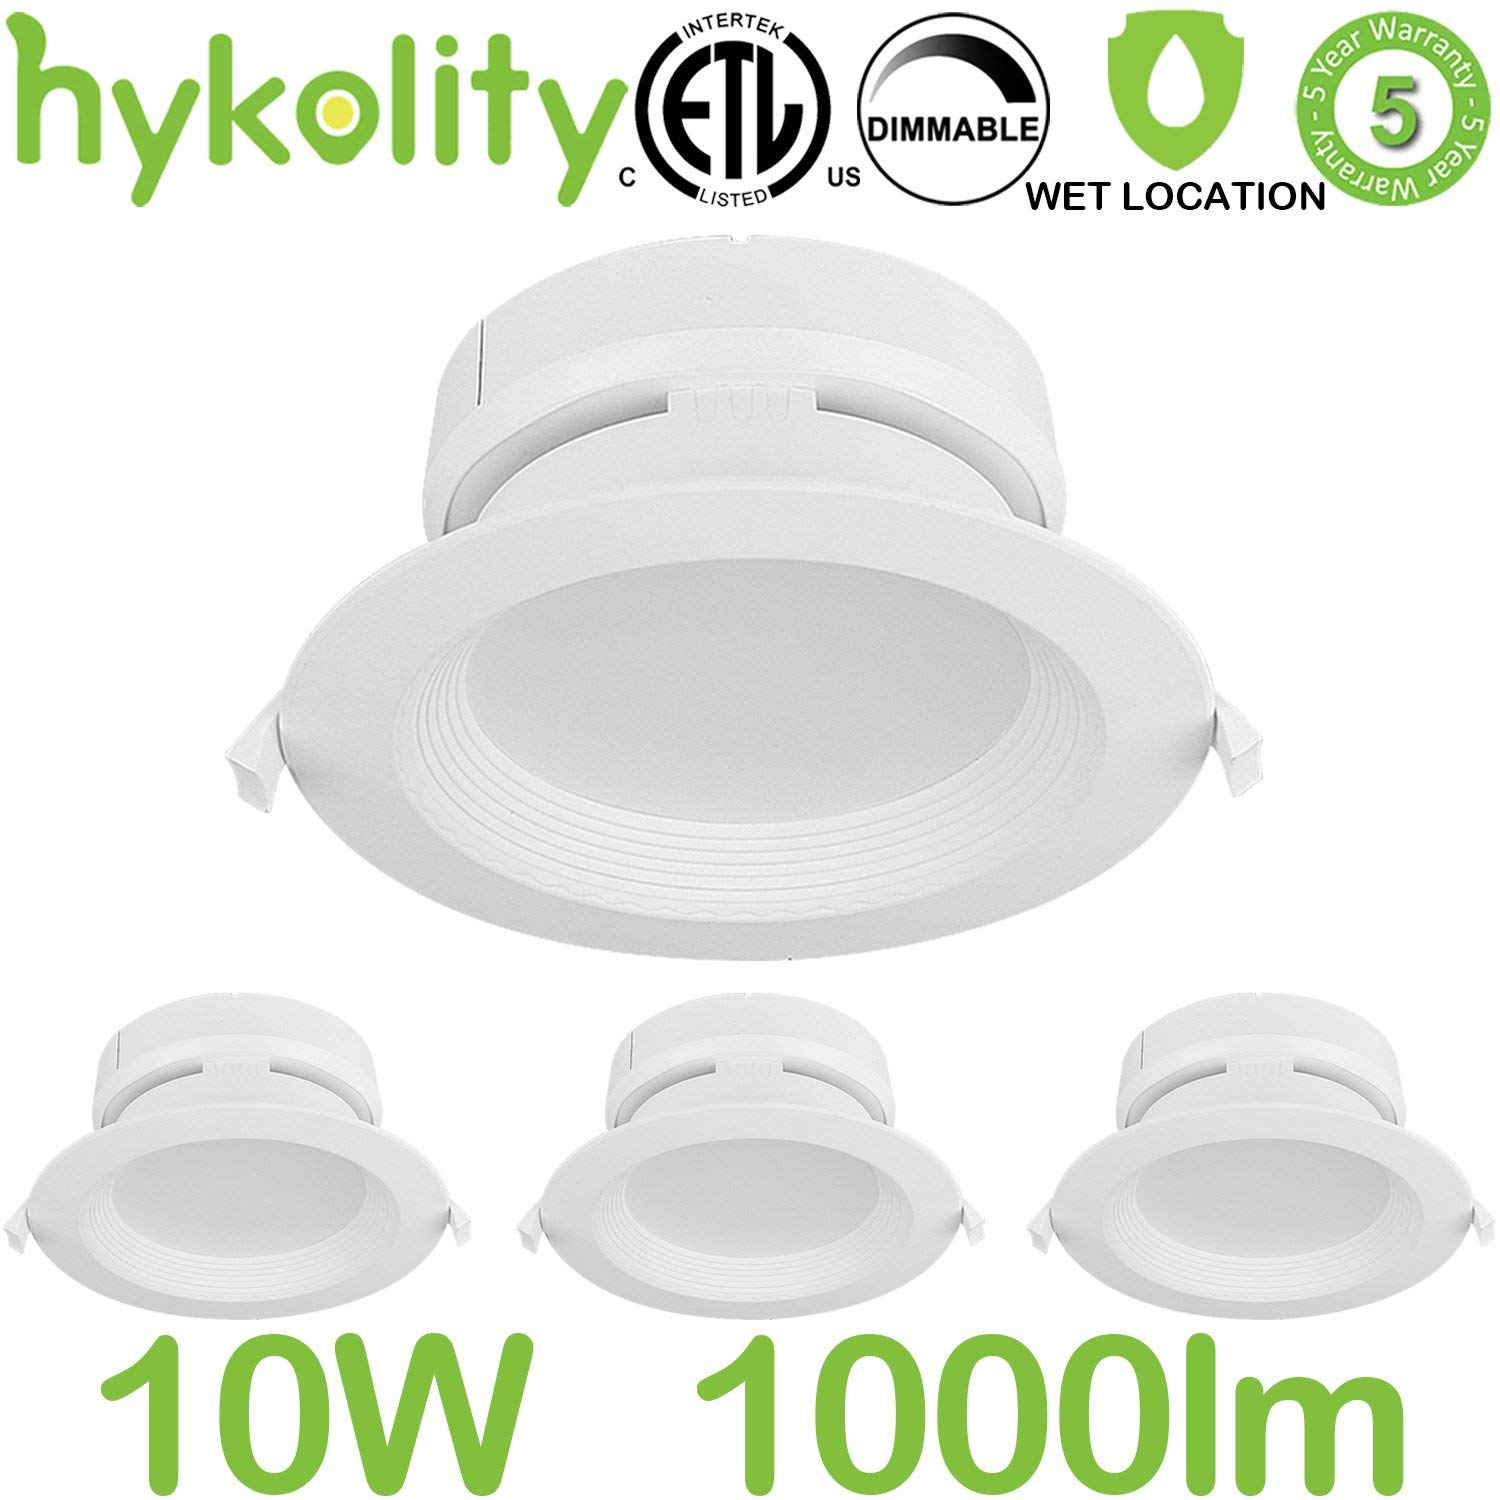 Hykolity 4 Inch LED Recessed Downlight Kit with Junction box, 10W 1000lm 5000K Daylight Dimmable Remodeling LED downlight kit, 120V-277V, Airtight& IC Rated Wet Location, ETL&Energy Star- 4 Pack